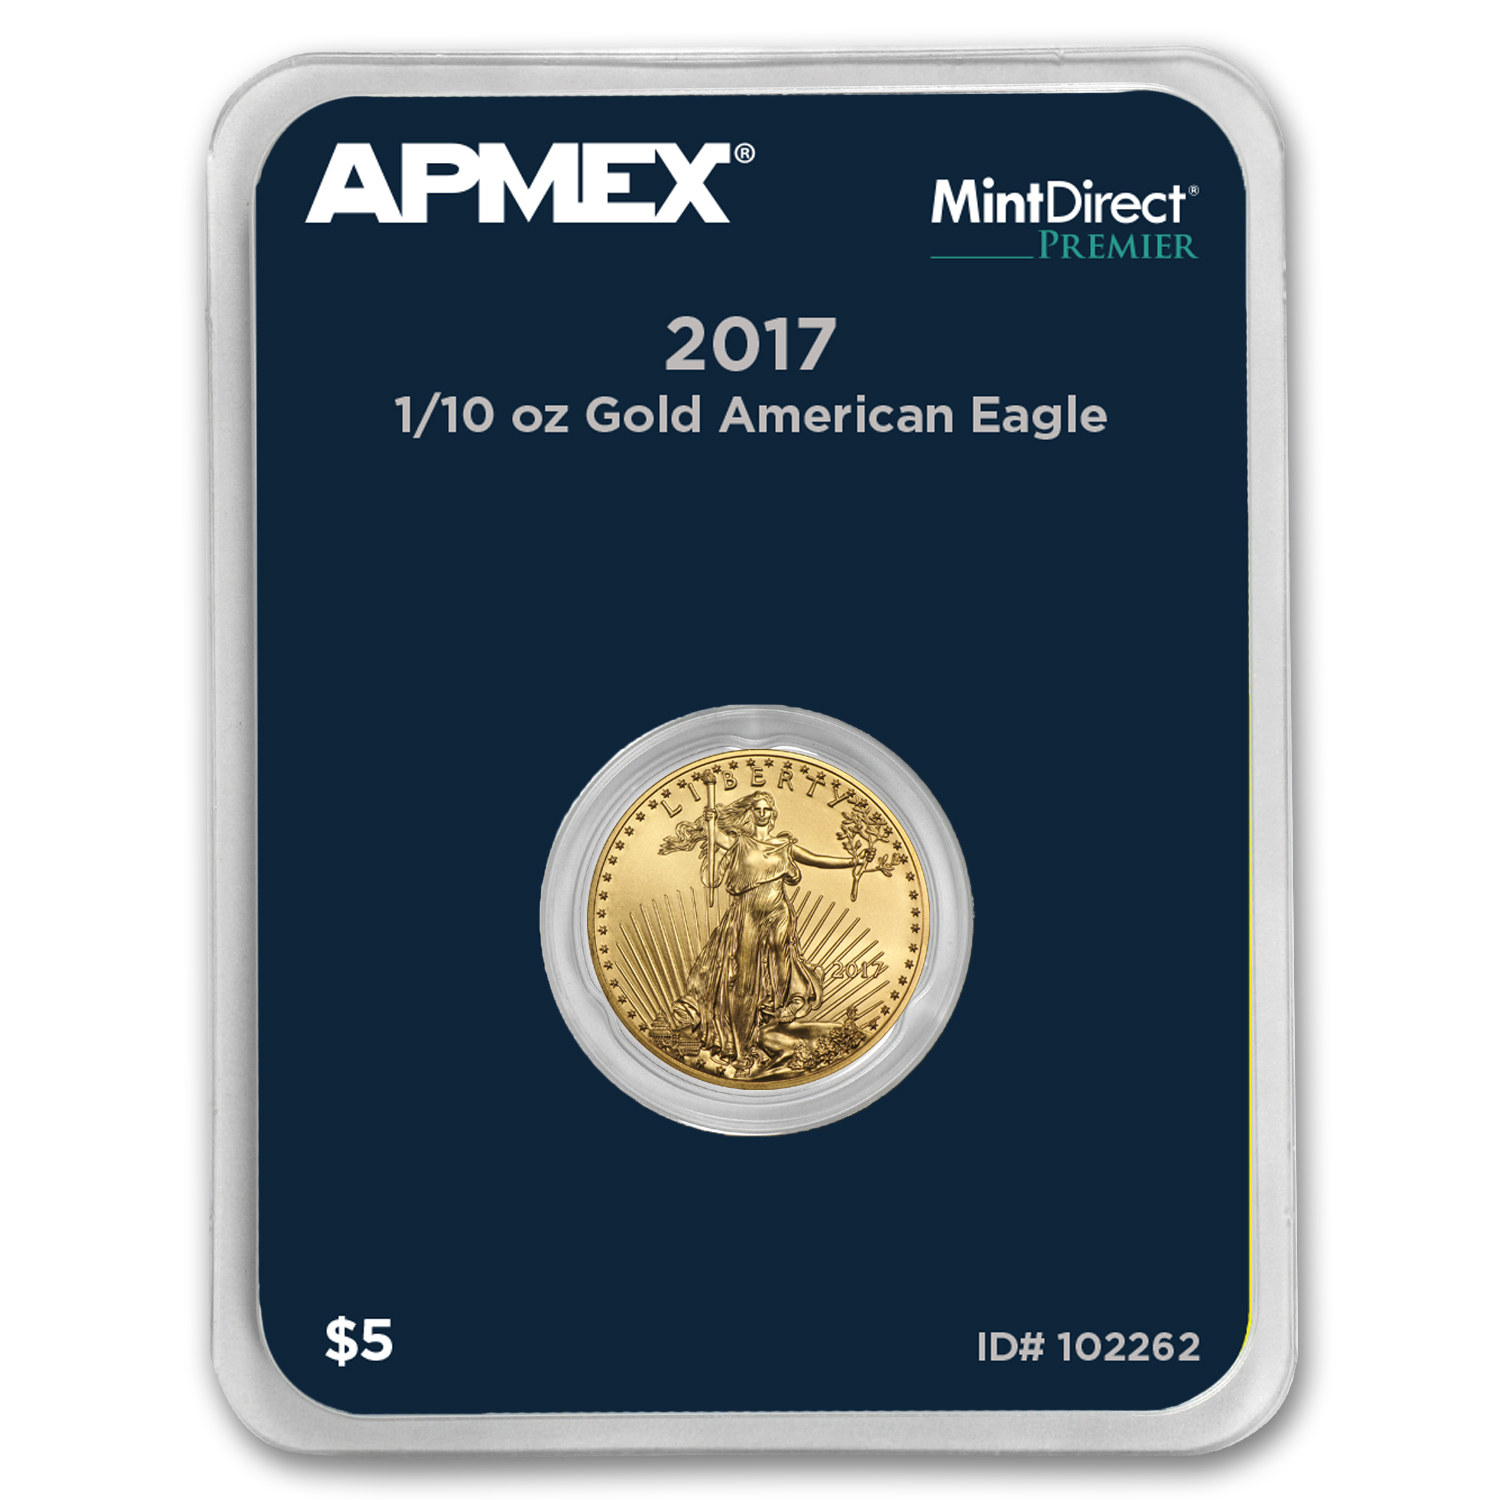 2017 1/10 oz Gold American Eagle (MintDirect® Premier Single)